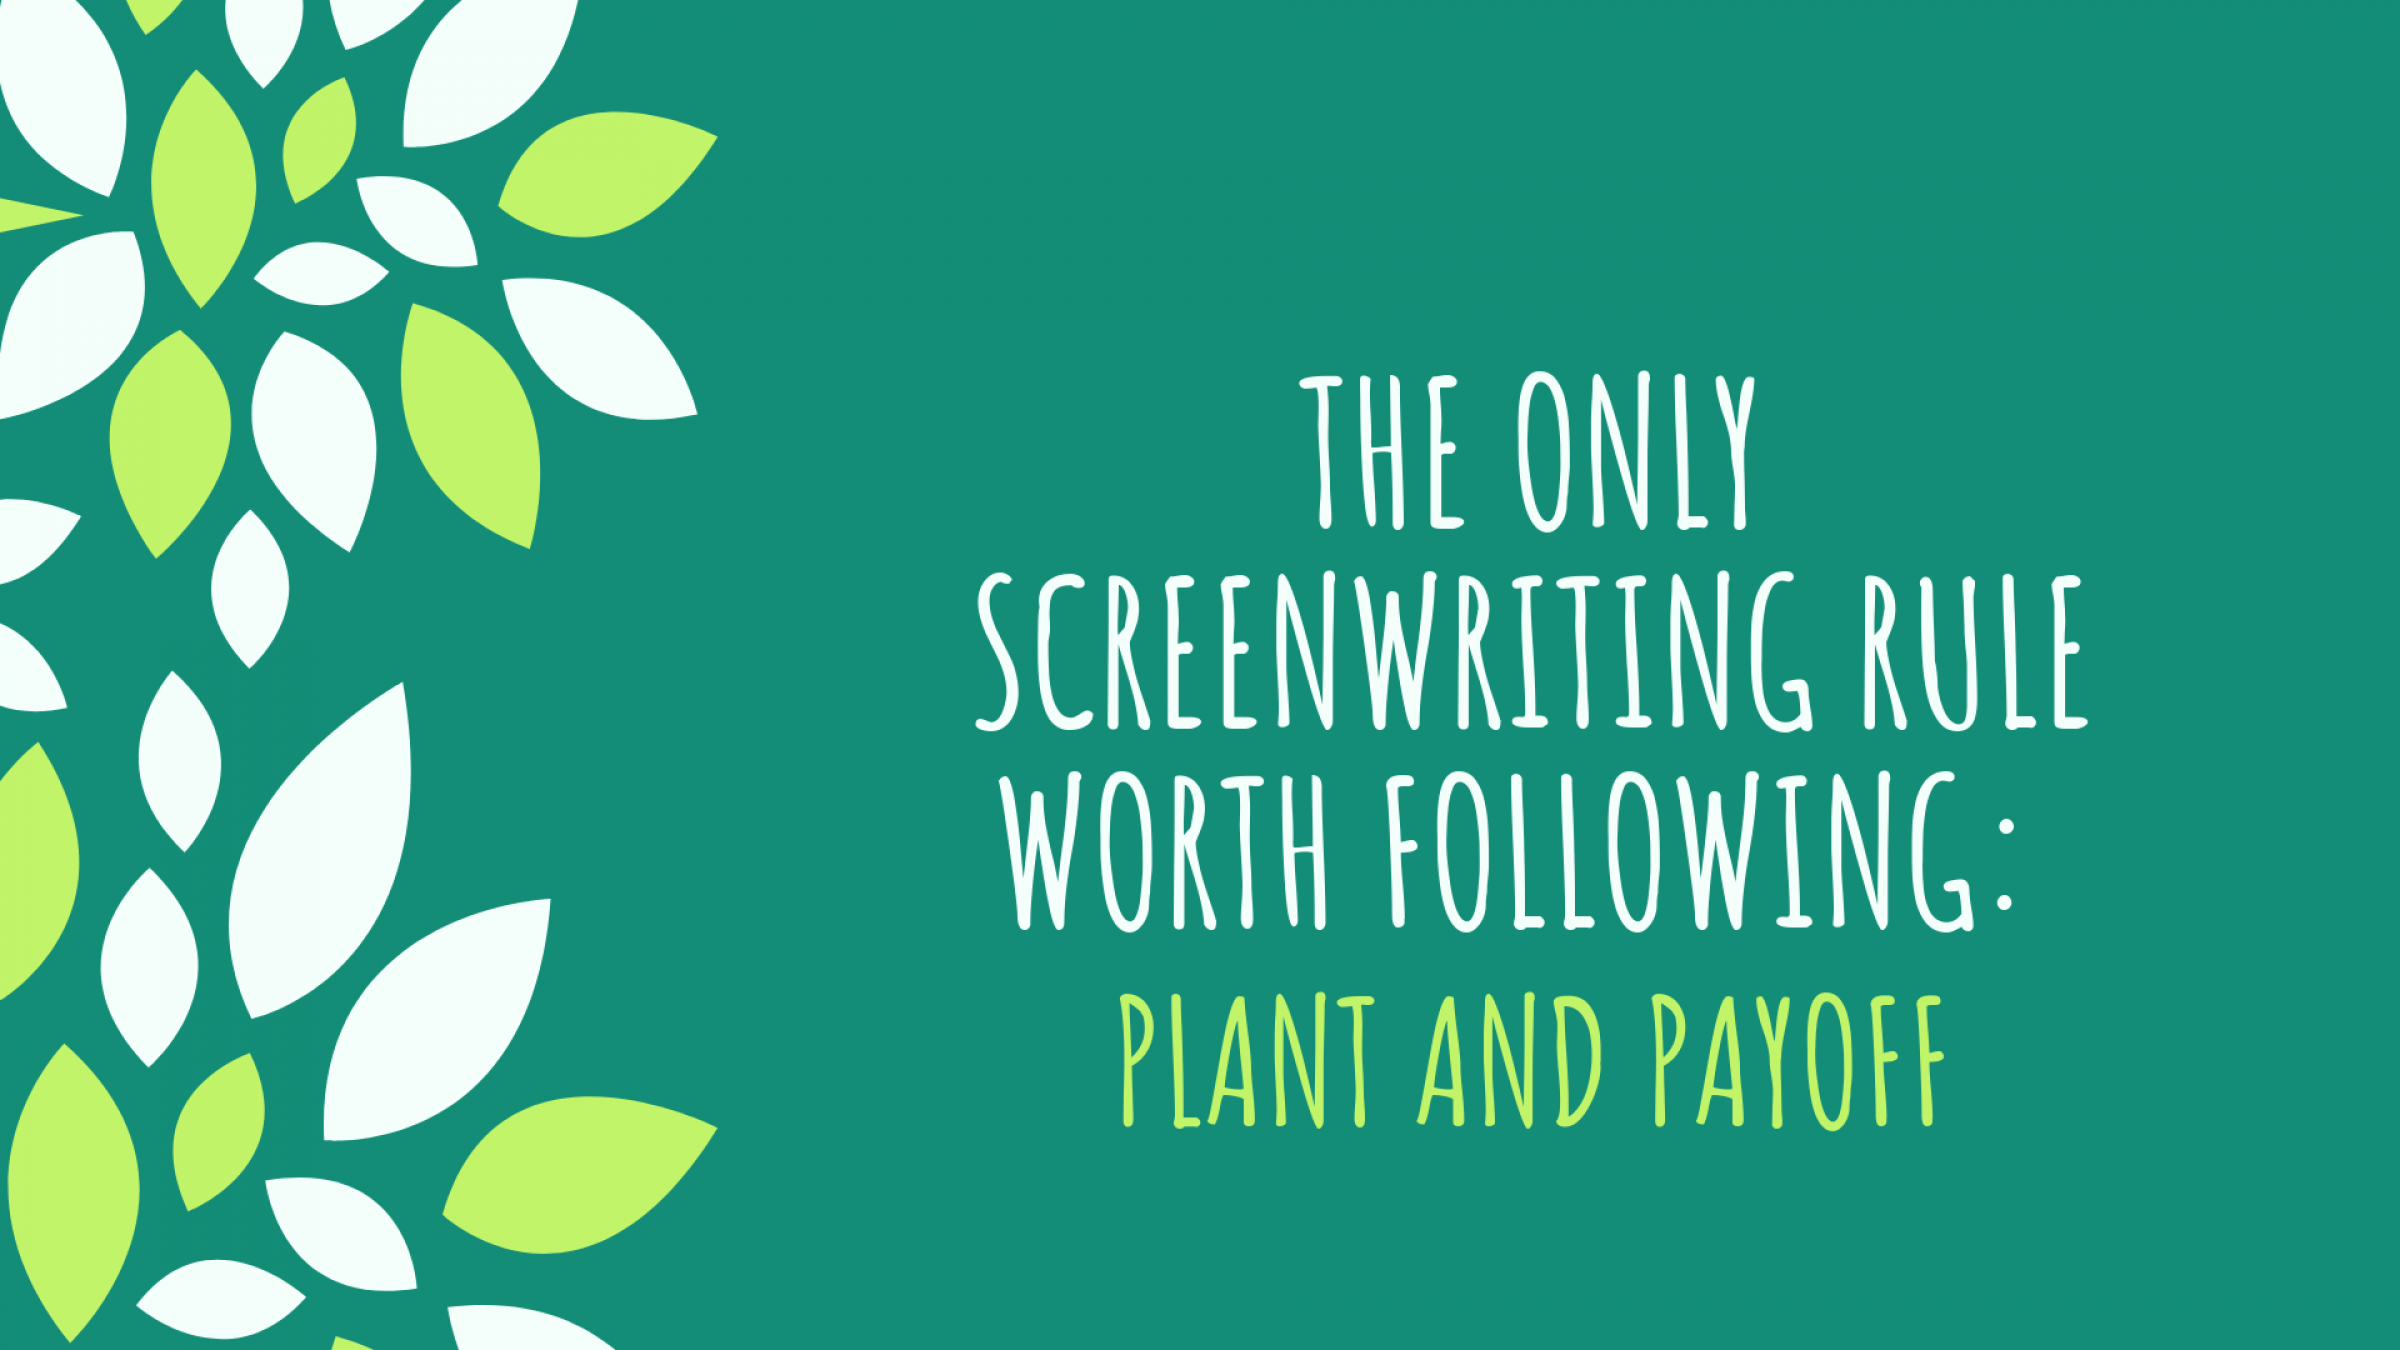 The Only Screenwriting Rule Worth Following: Plant and Payoff